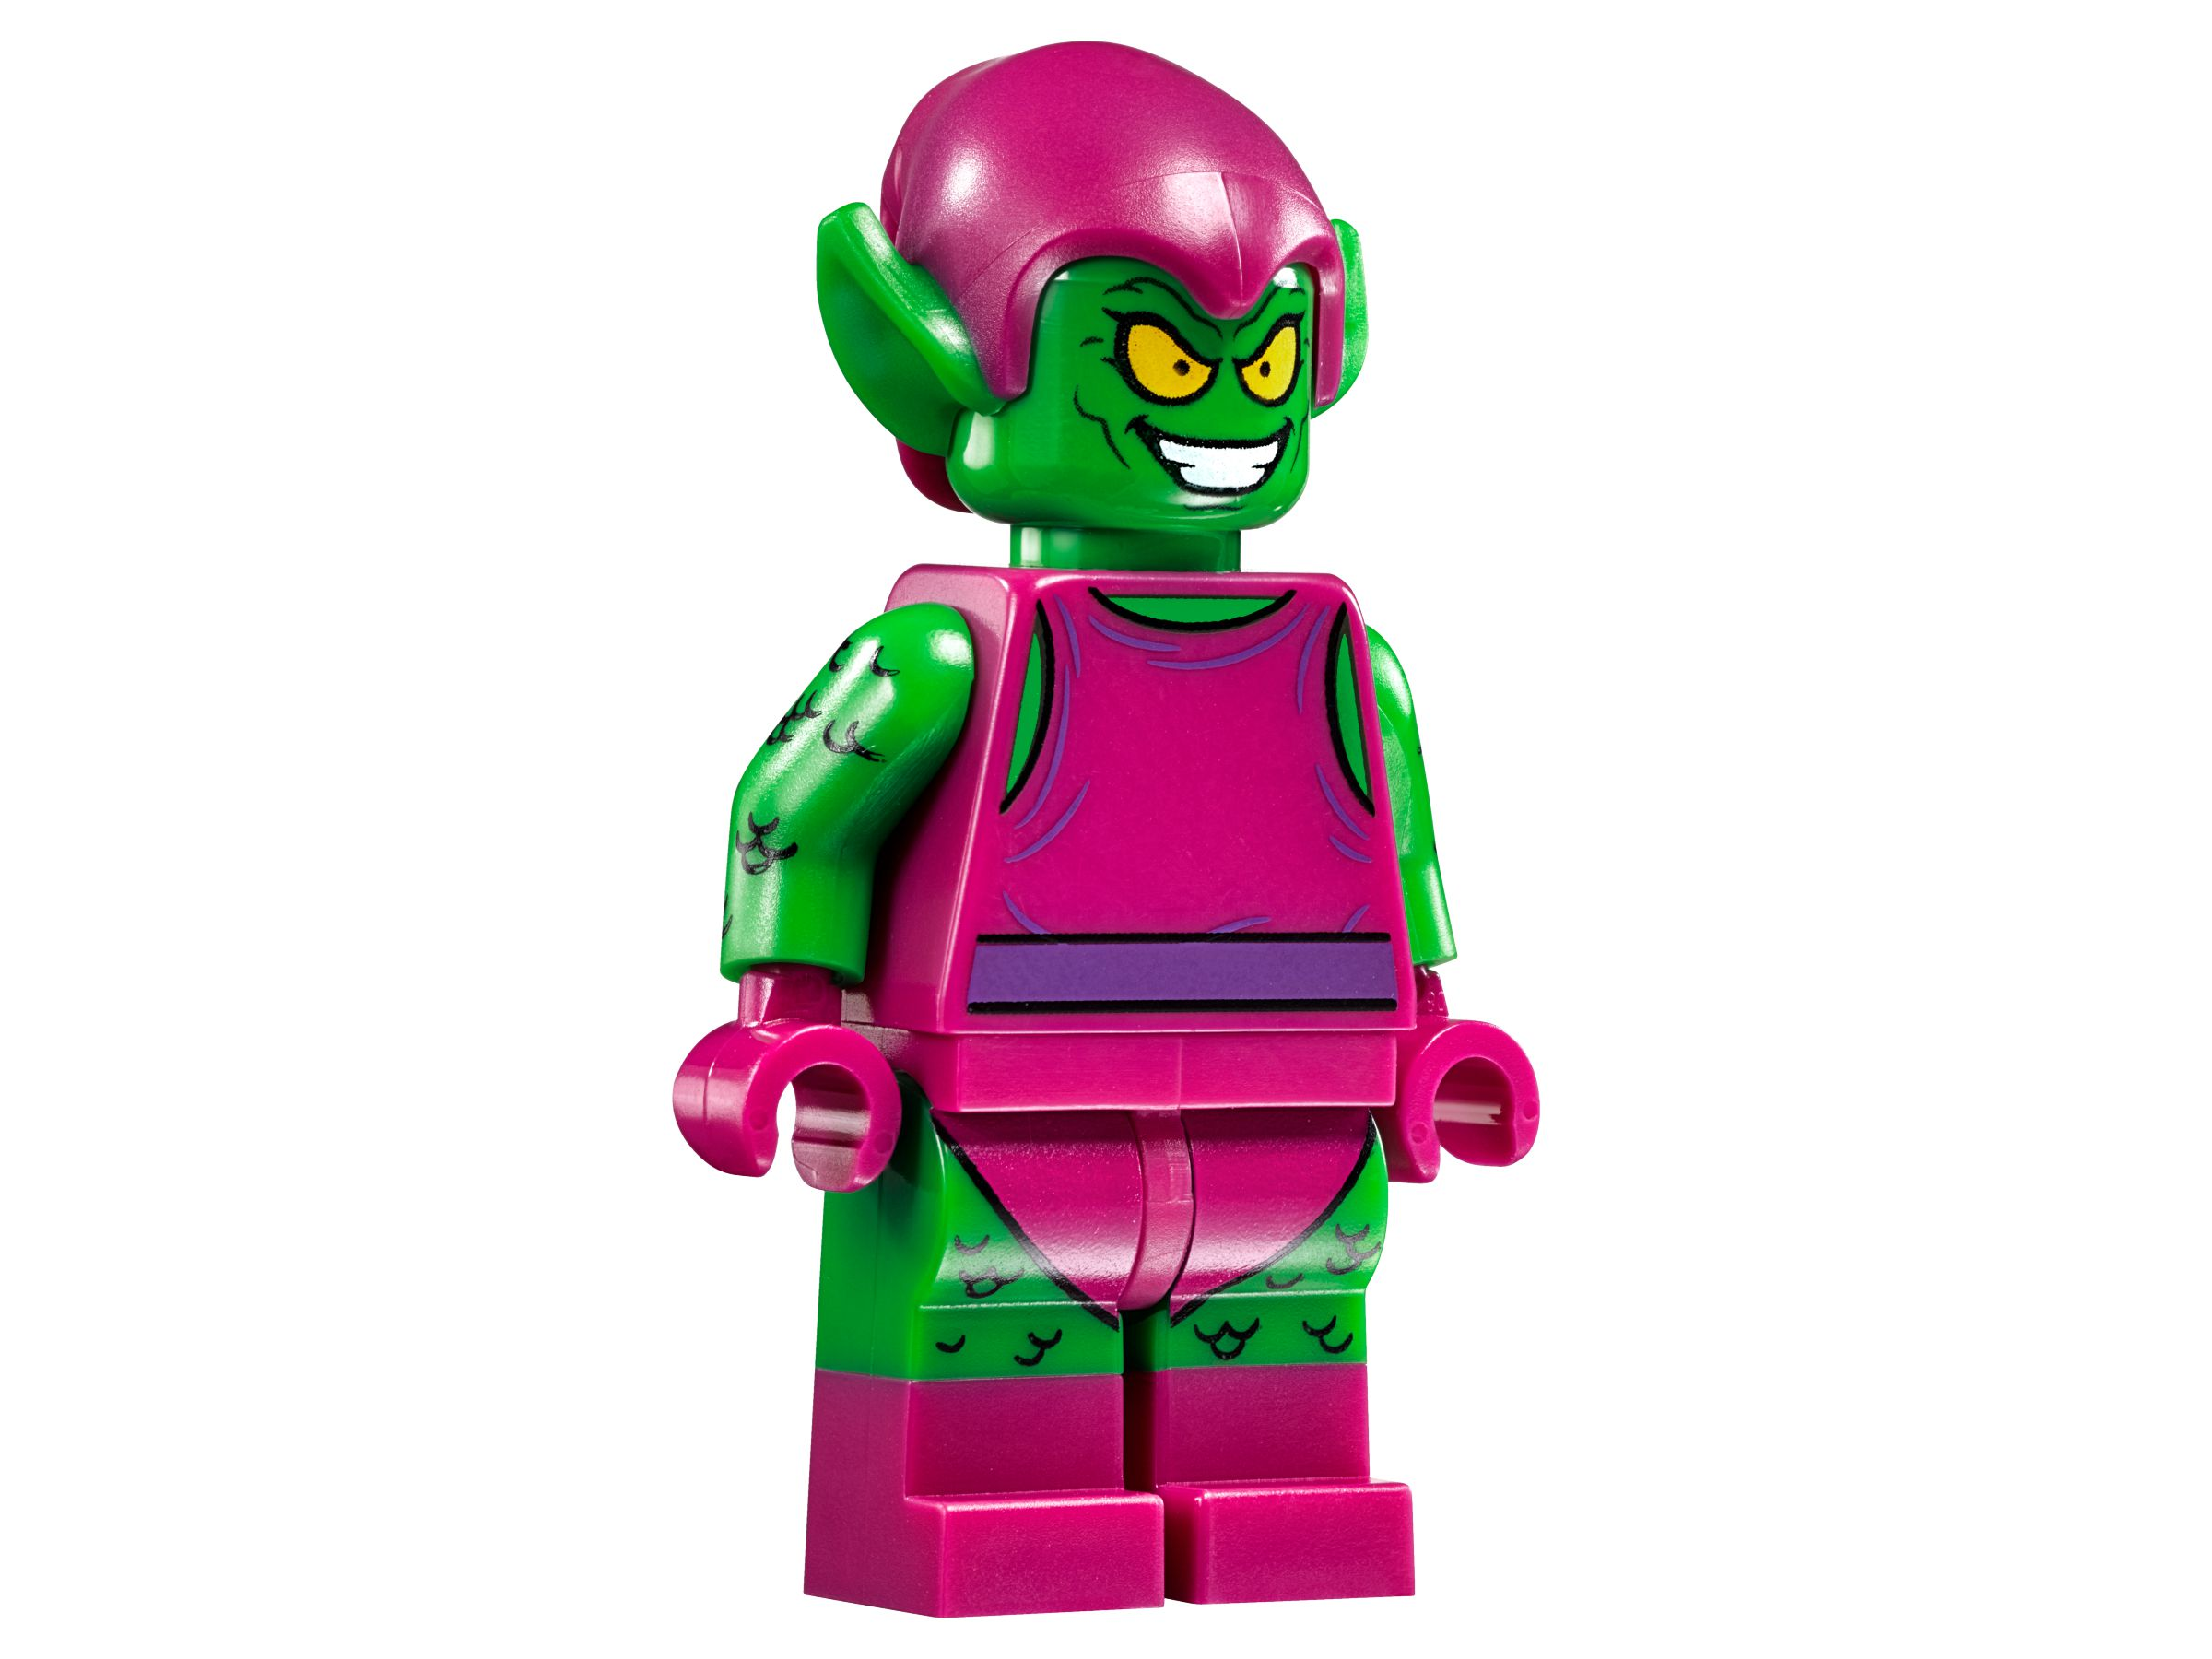 LEGO Super Heroes 76057 Spider-Man: Ultimatives Brückenduell der Web-Warriors LEGO_76057_alt13.jpg